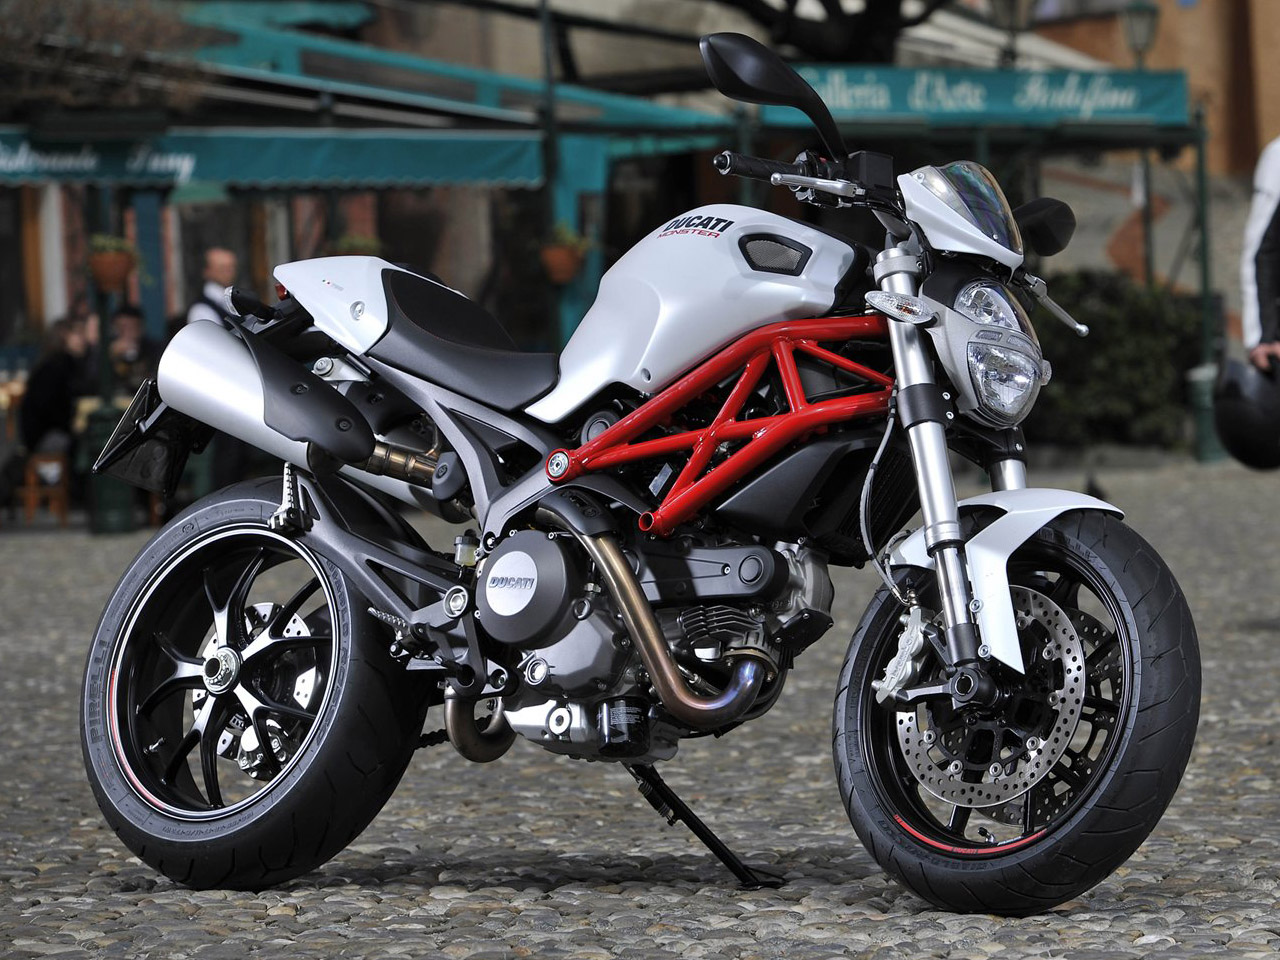 Ducati Hypermotard 796 images #79594